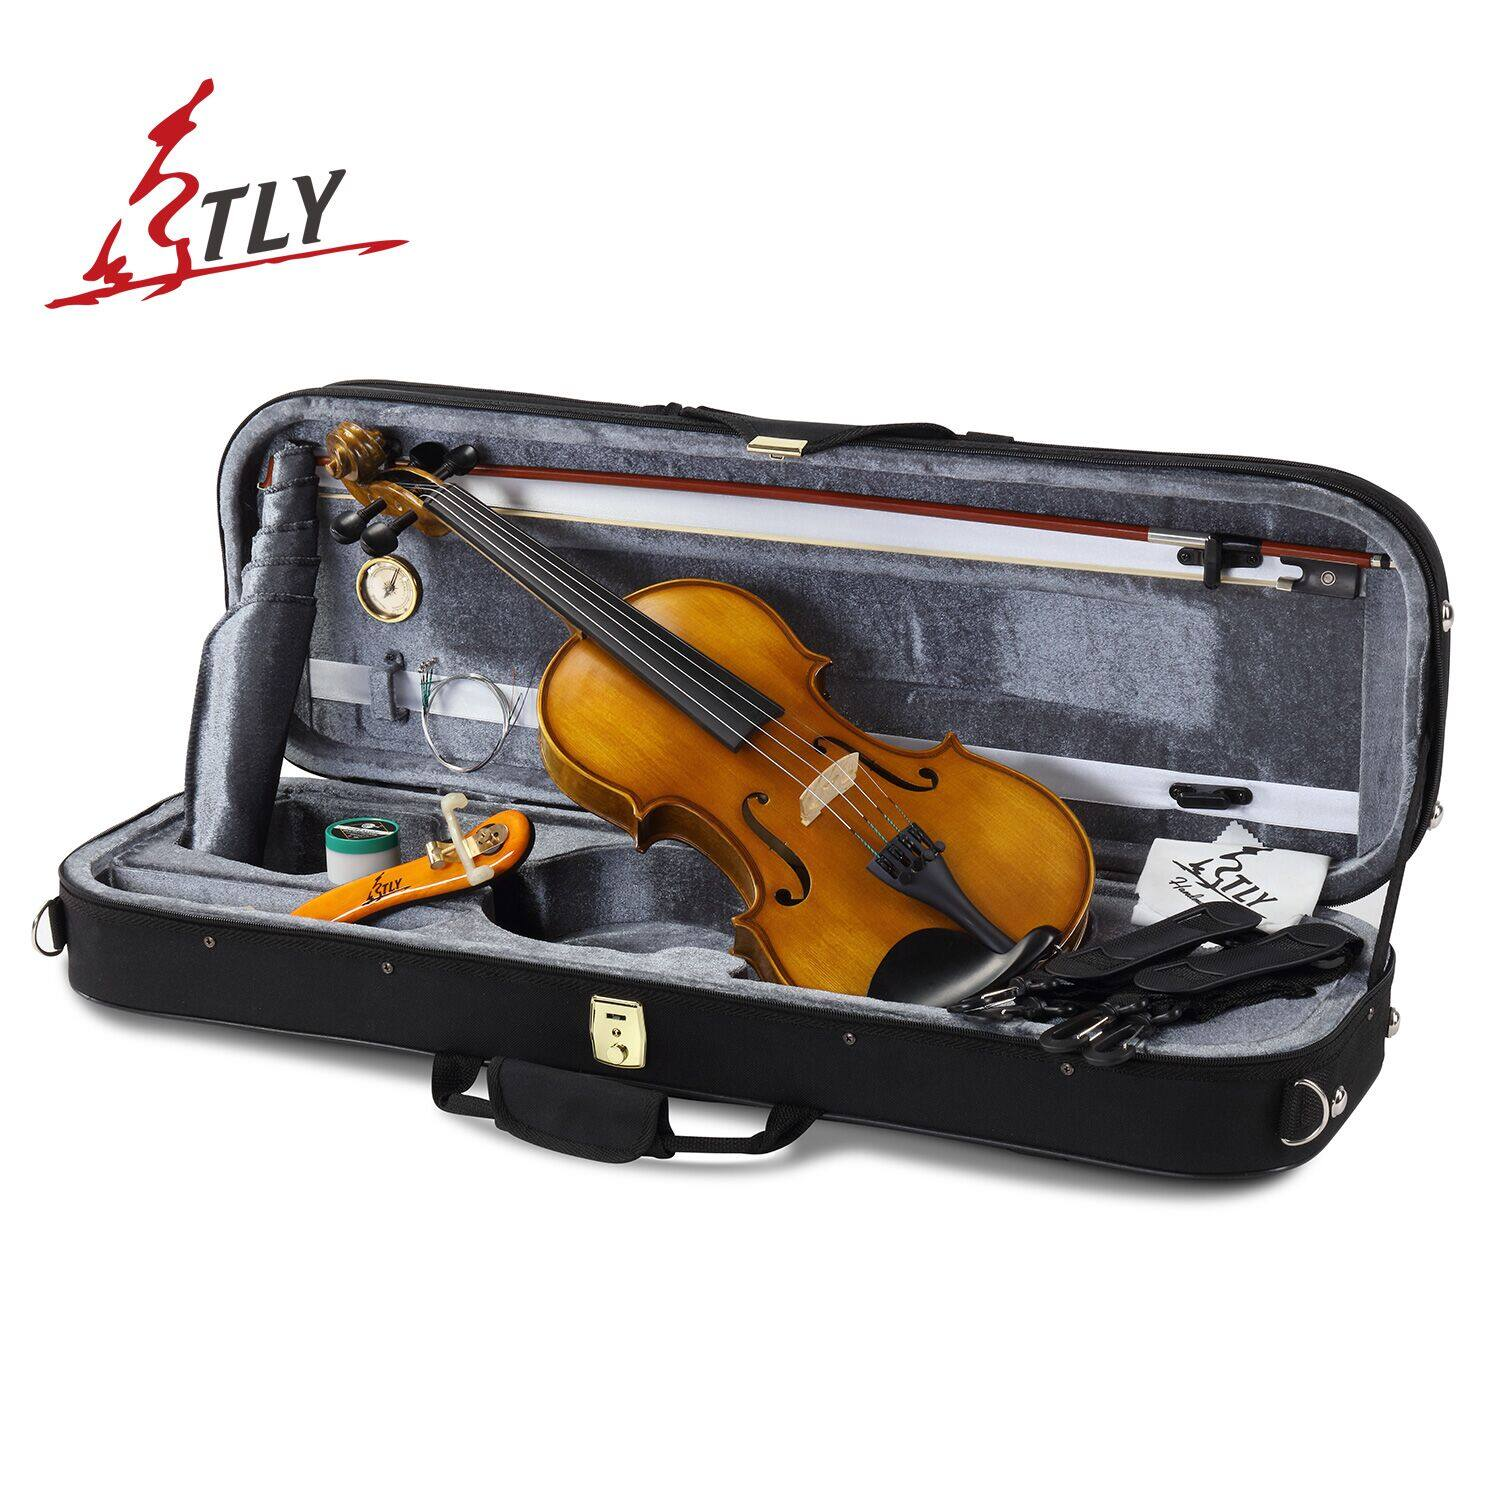 TLY Handmade Violin for Beginners,Discount 60% OFF, After Code Price: $107.92 & Free Shipping